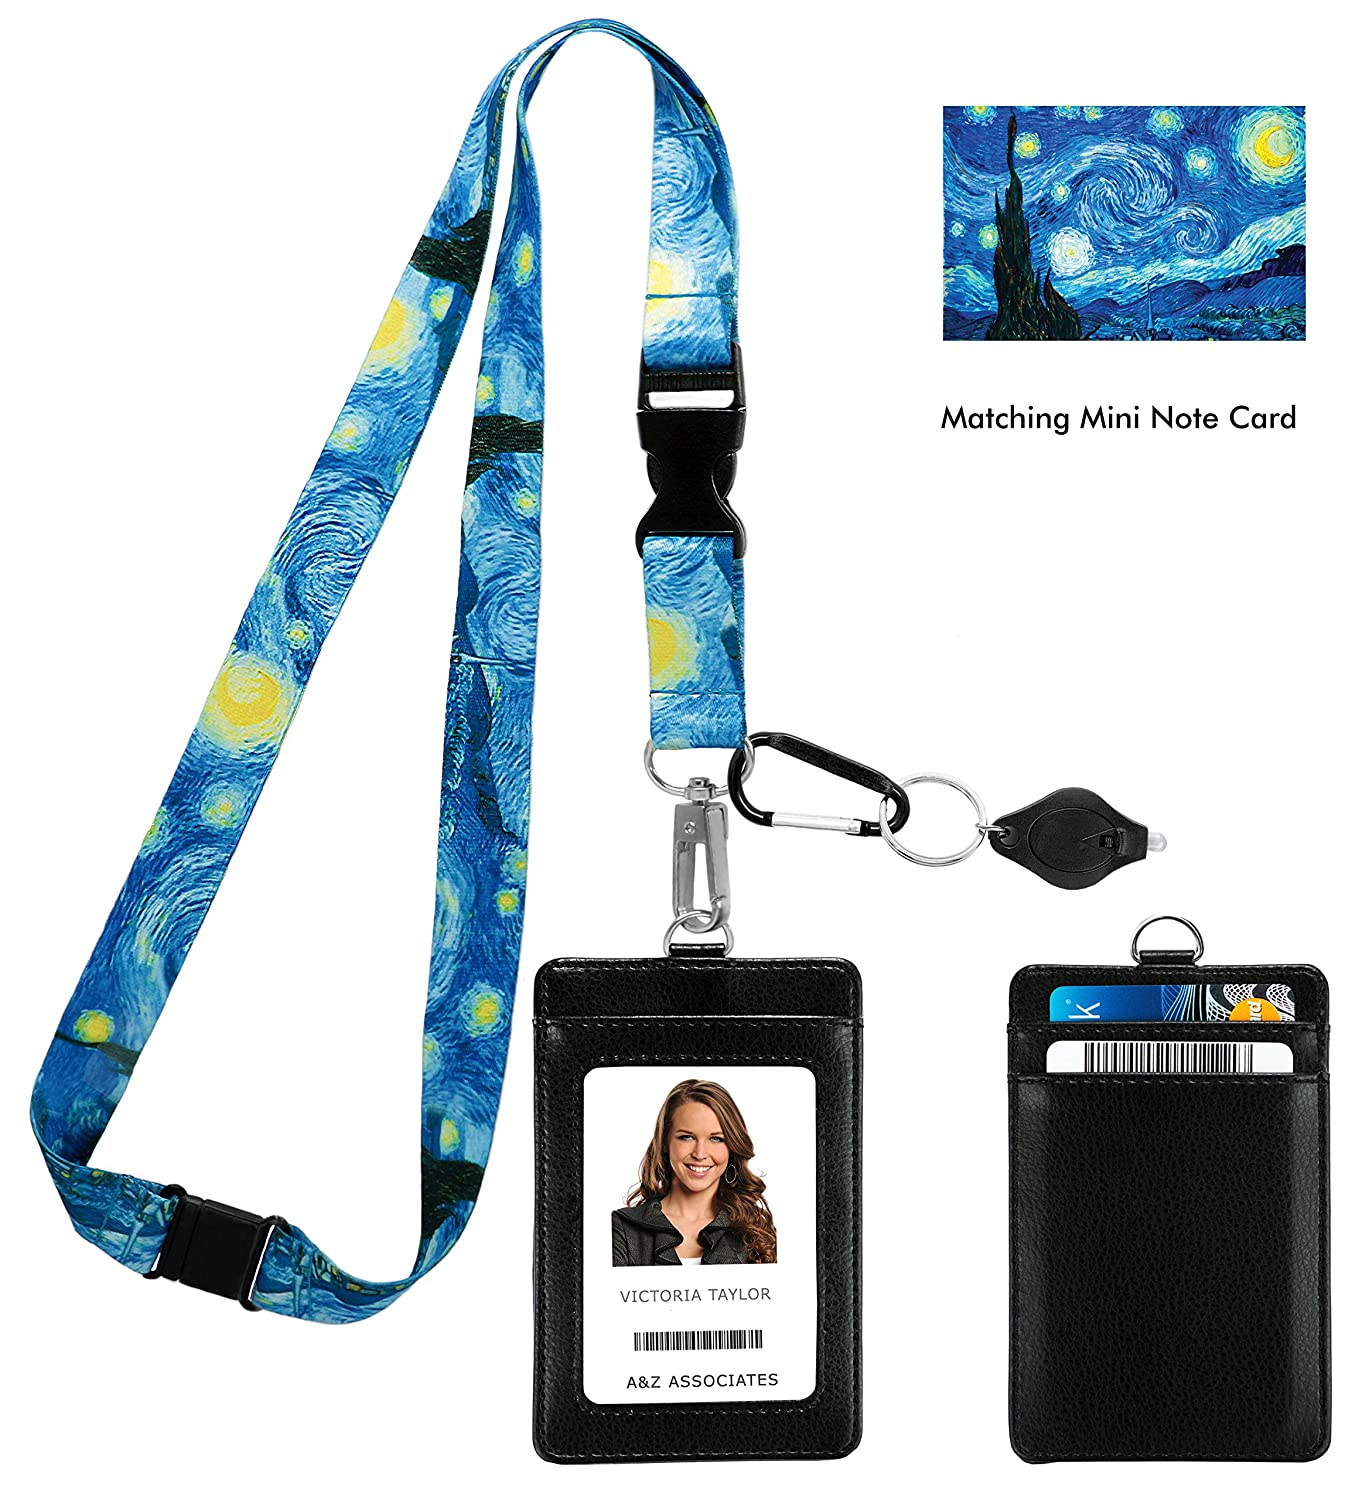 Vincent Van Gogh the Starry Night Print Lanyard with PU Leather ID Badge Holder with Front and Back pockets, Safety Breakaway Clip and Matching Note Card. Carabiner Keychain Flashlight. One In A Millionaire